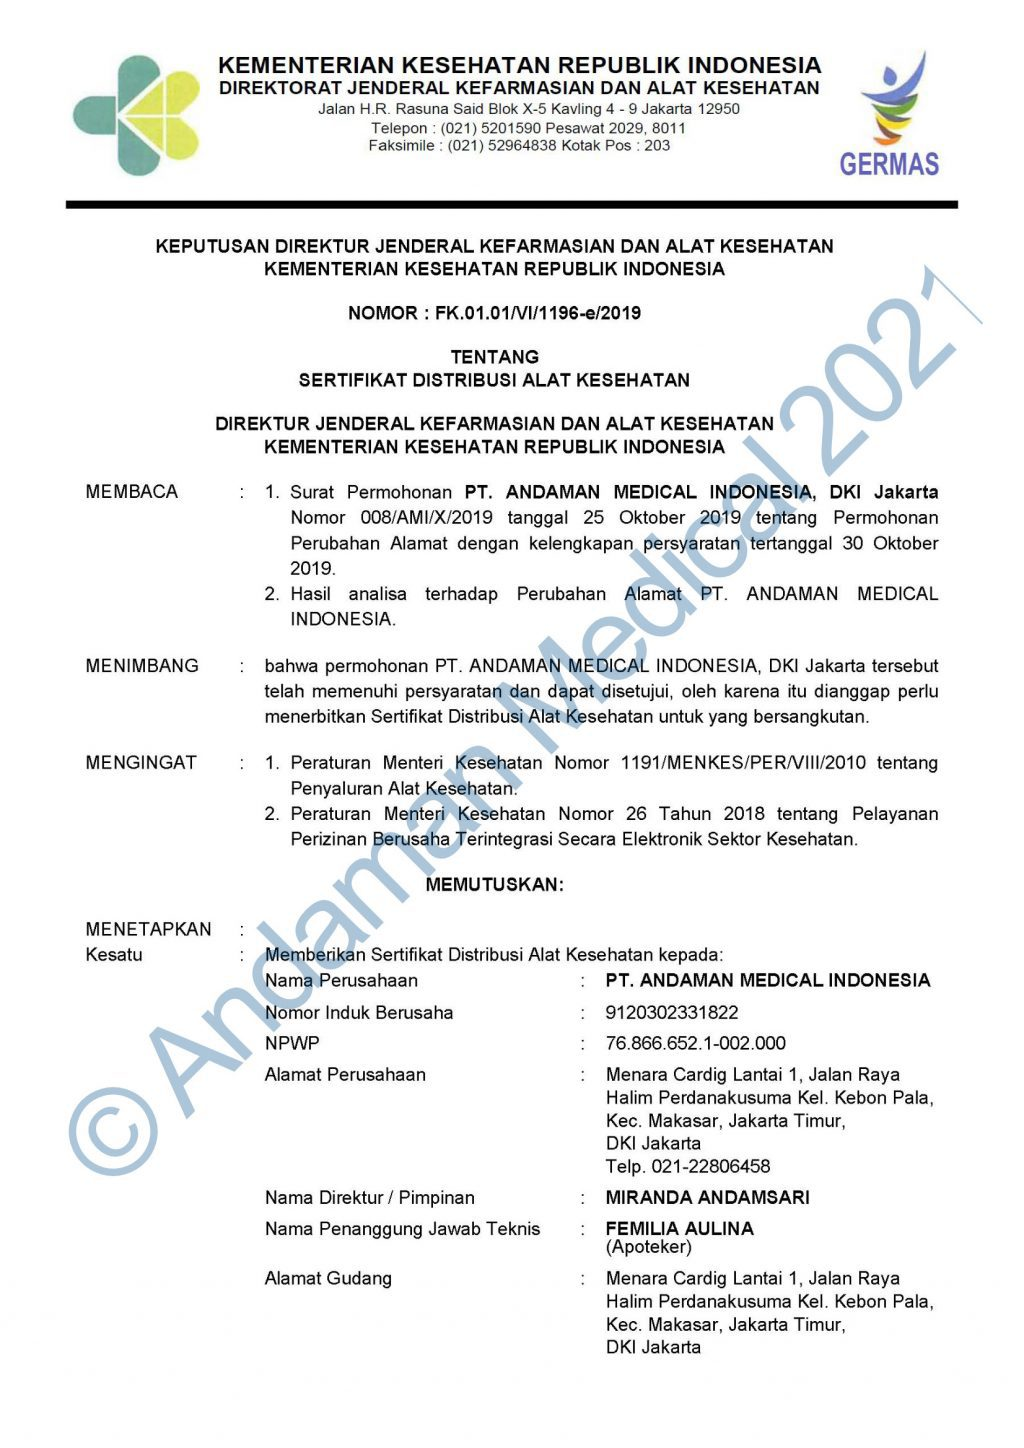 Andaman Medical Indonesia SDAK Medical Device Distribution Certificate